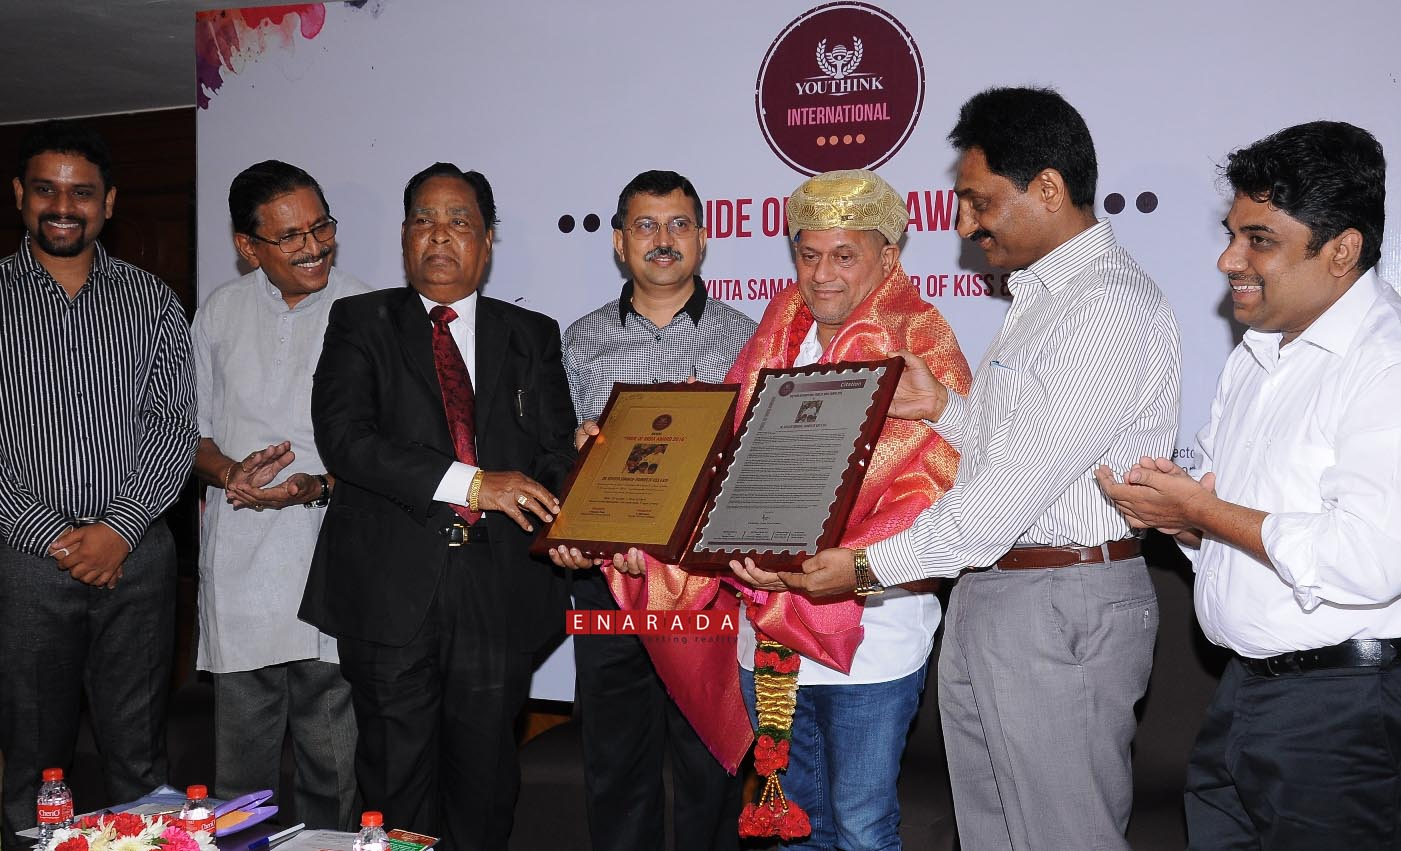 Pride of India Award given to Acyuta Samanta. Ph: www.enarada.co